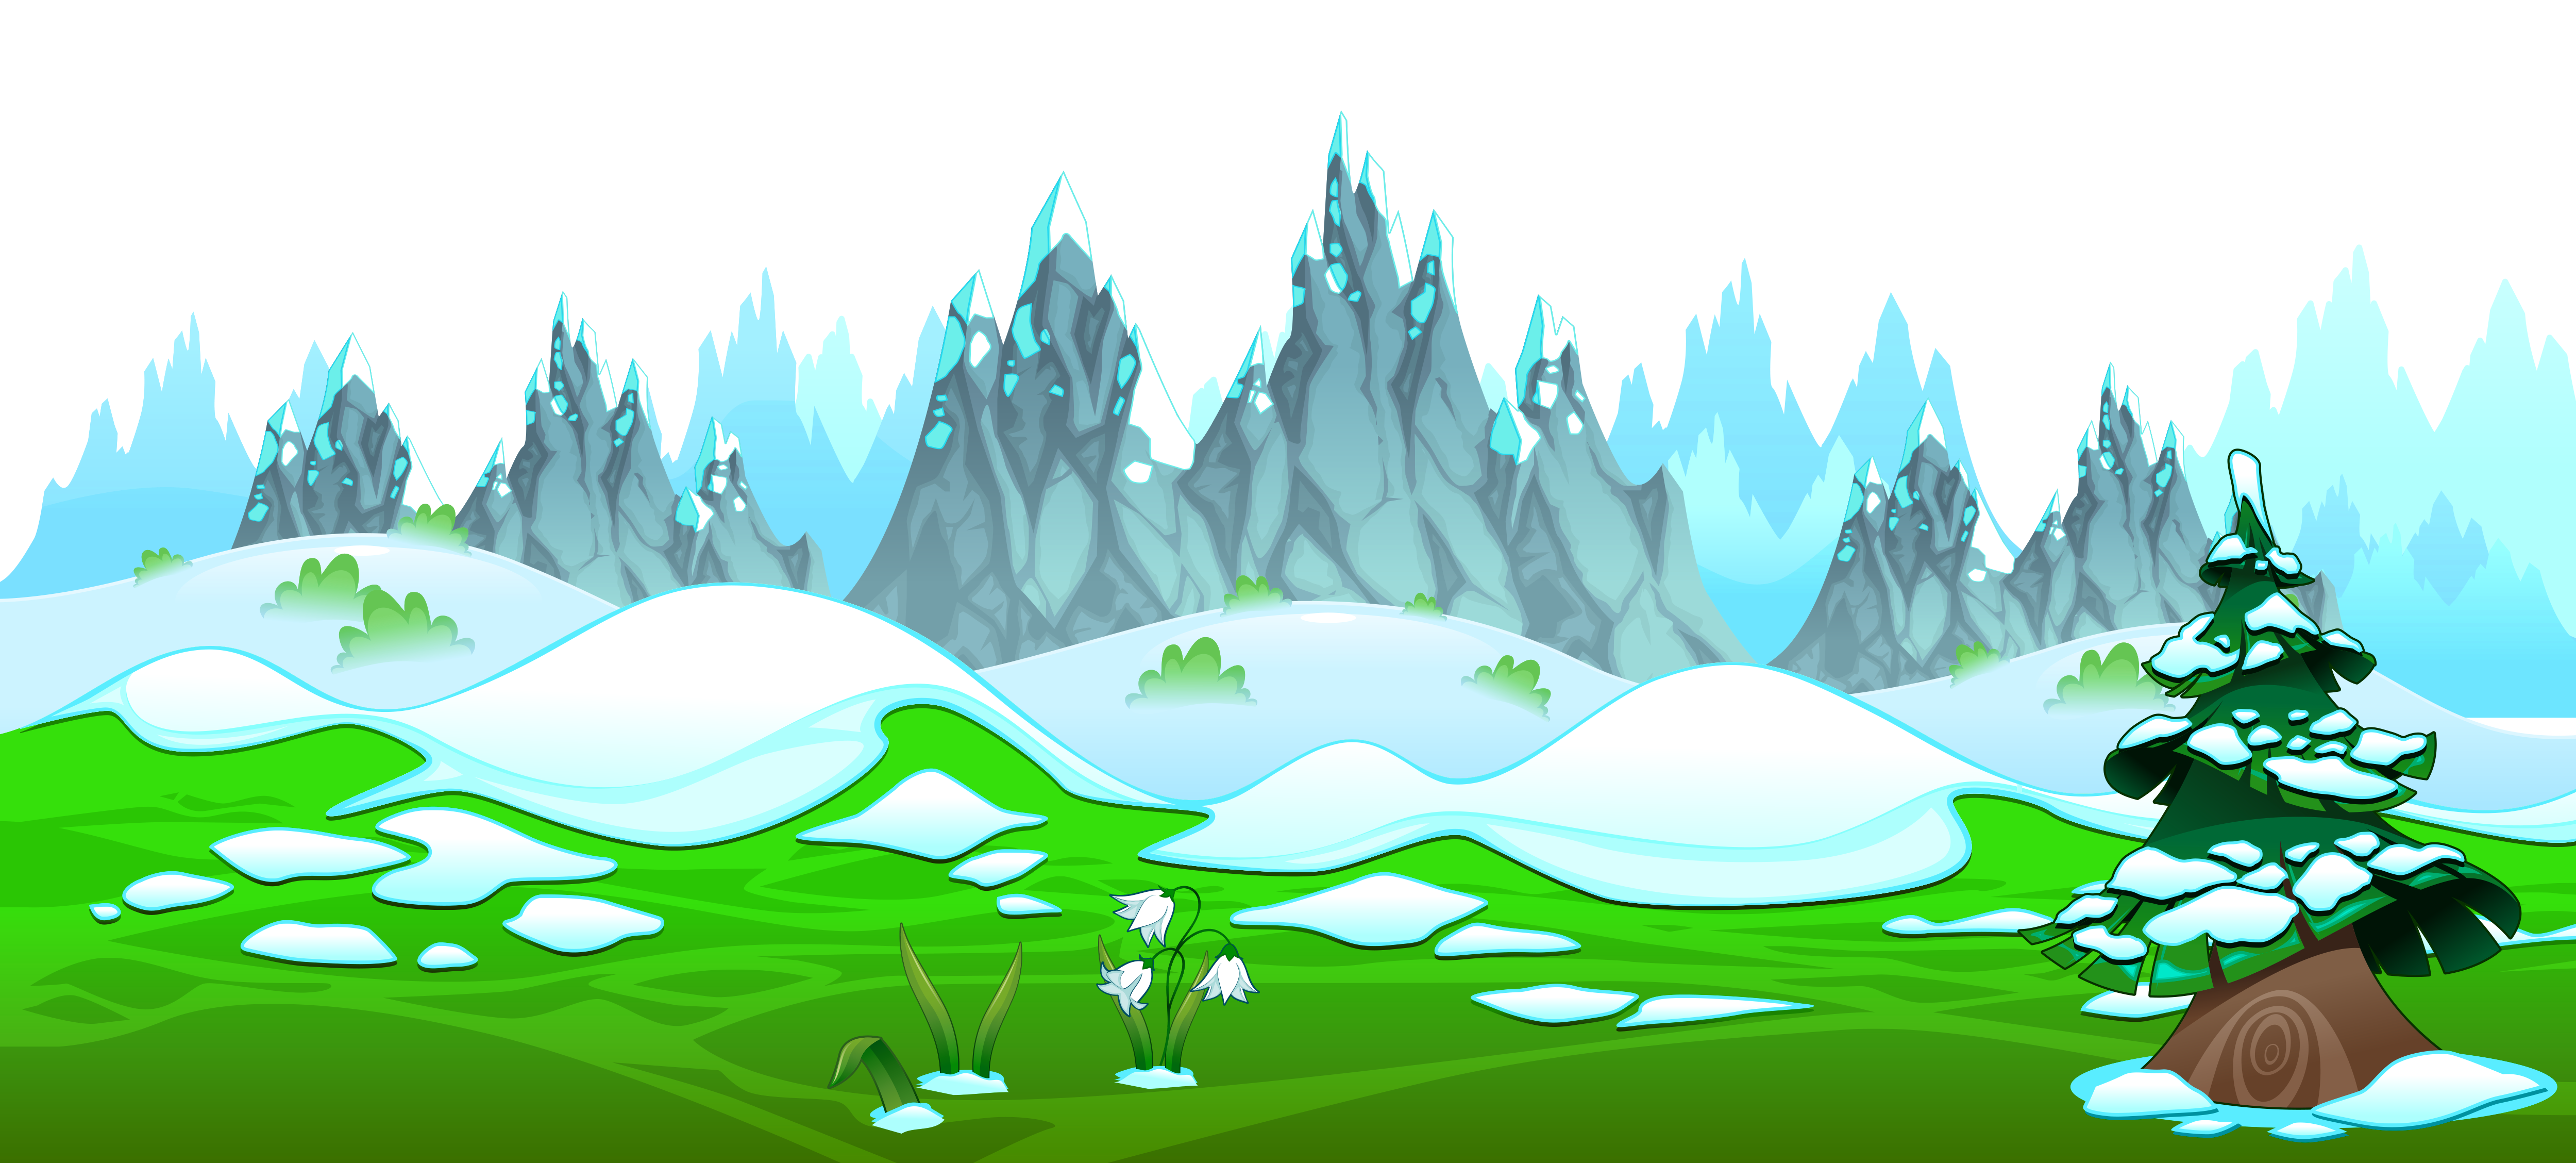 Early Spring With Icy Mountains Ground Png